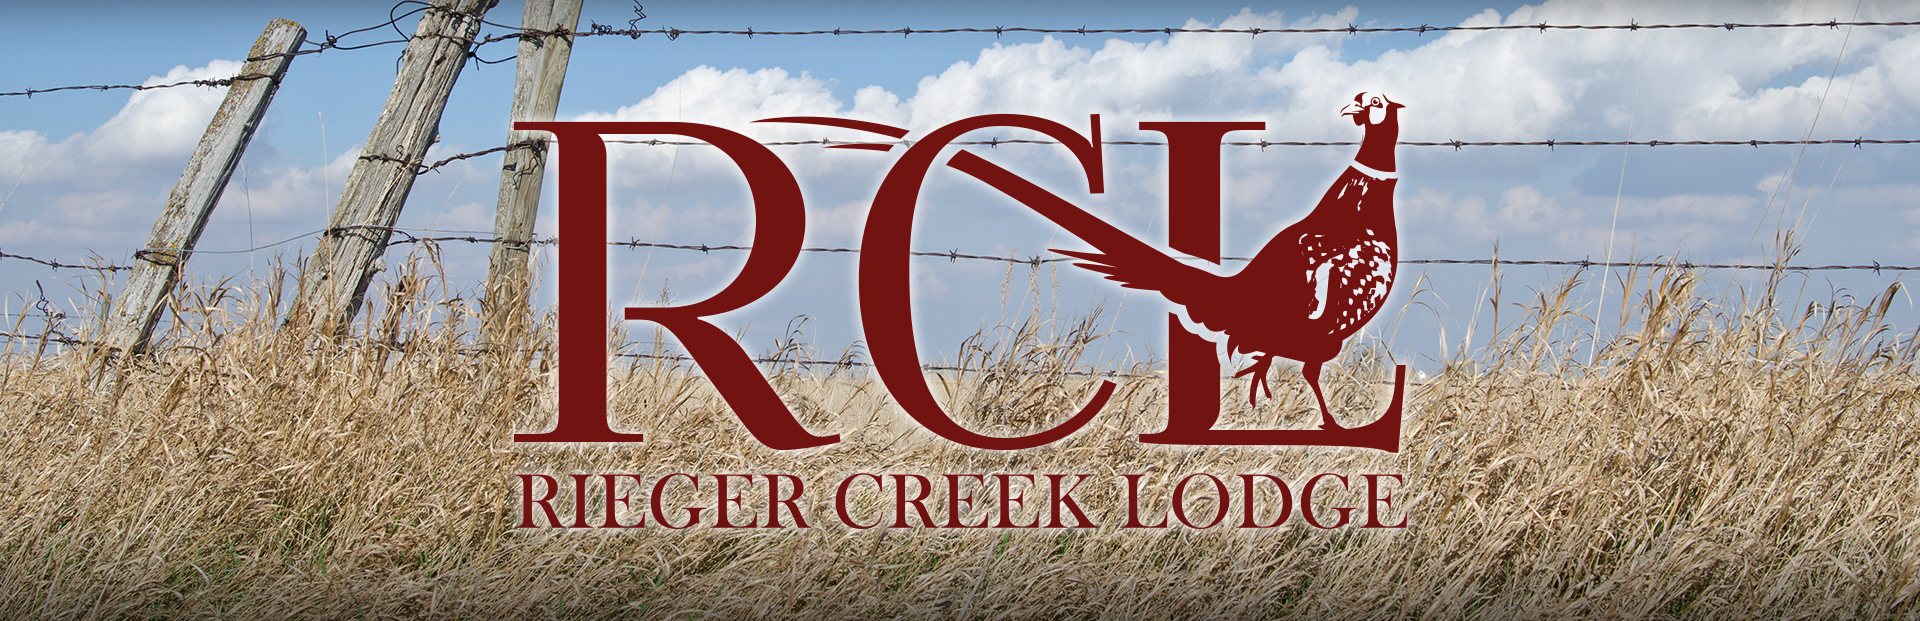 Link to Rieger Creek Lodge